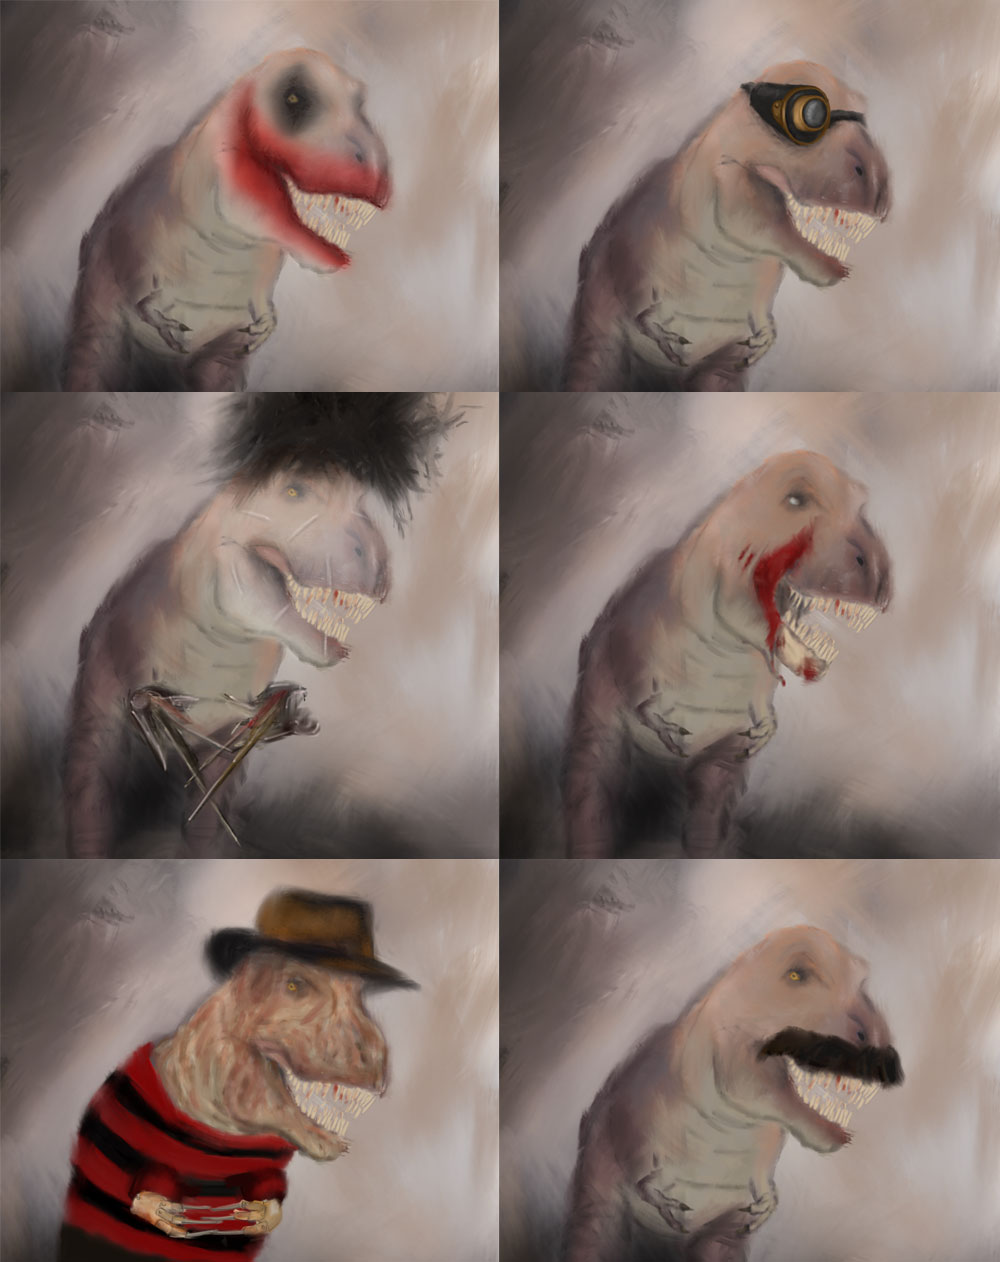 Many faces t-rex